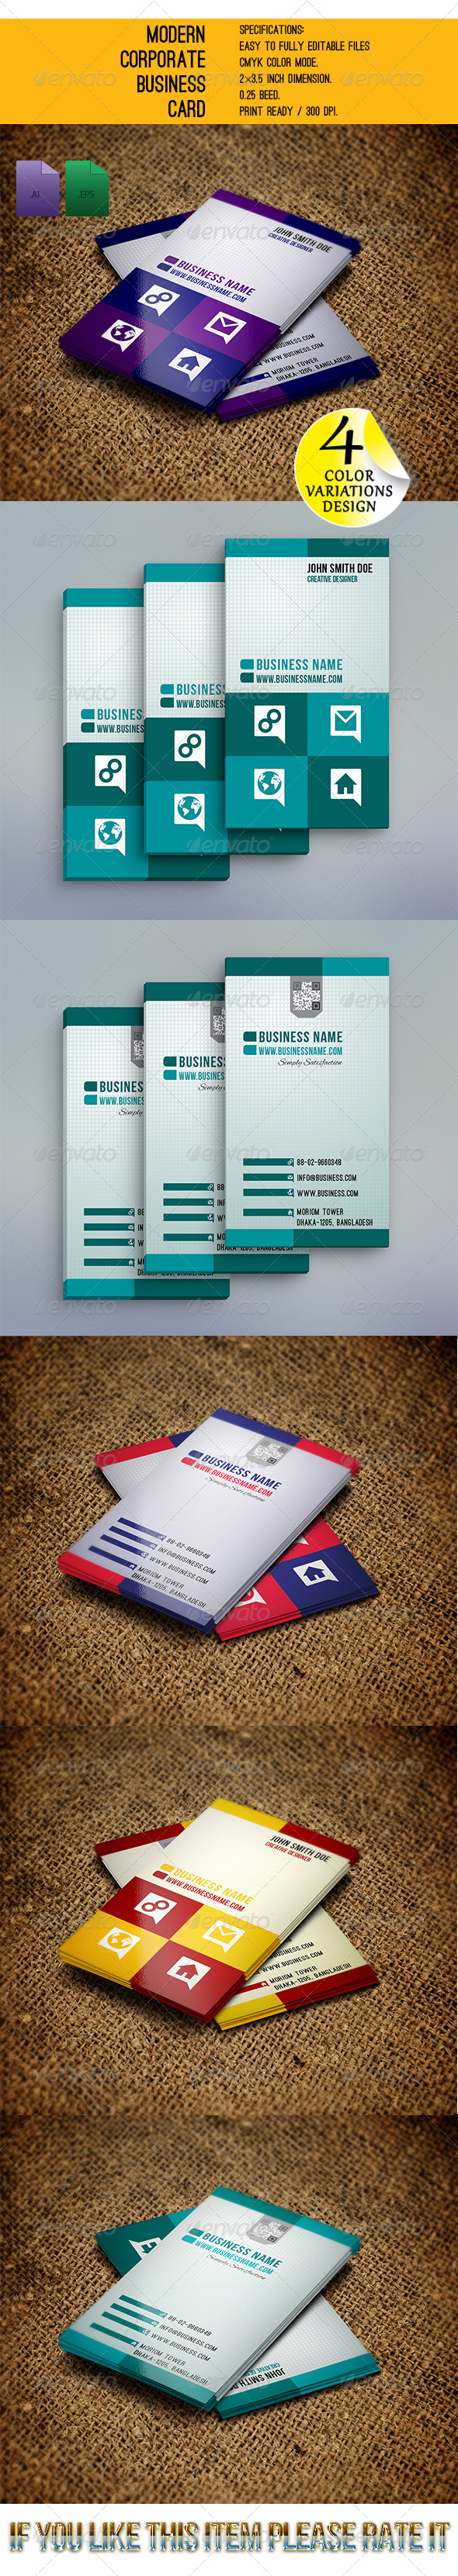 GraphicRiver Modern Corporate Business Card GD008 6024070